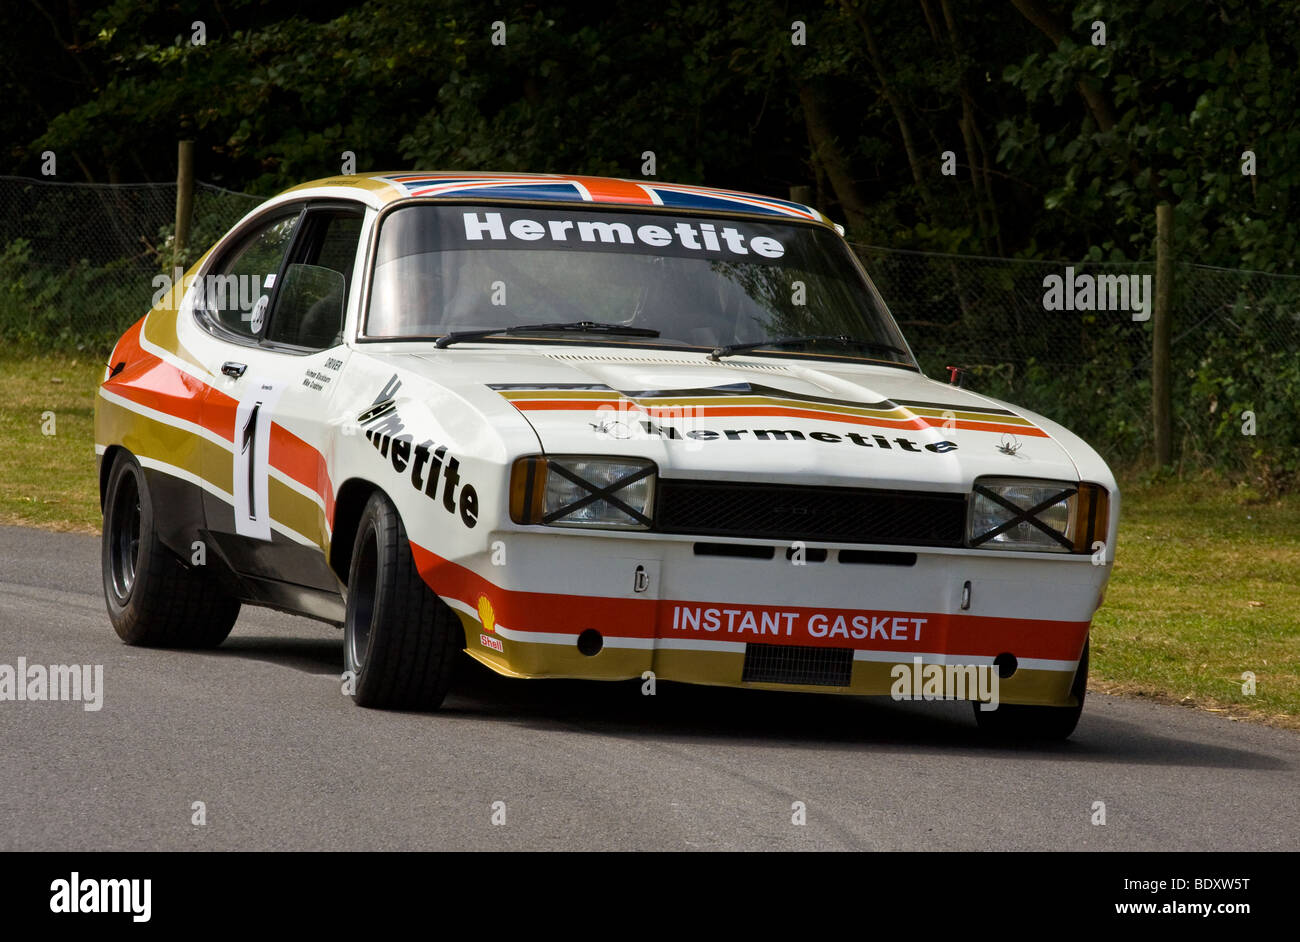 1974 hermetite ford capri mk2 3000 gt with driver holman blackburn at stock photo 25791412 alamy. Black Bedroom Furniture Sets. Home Design Ideas